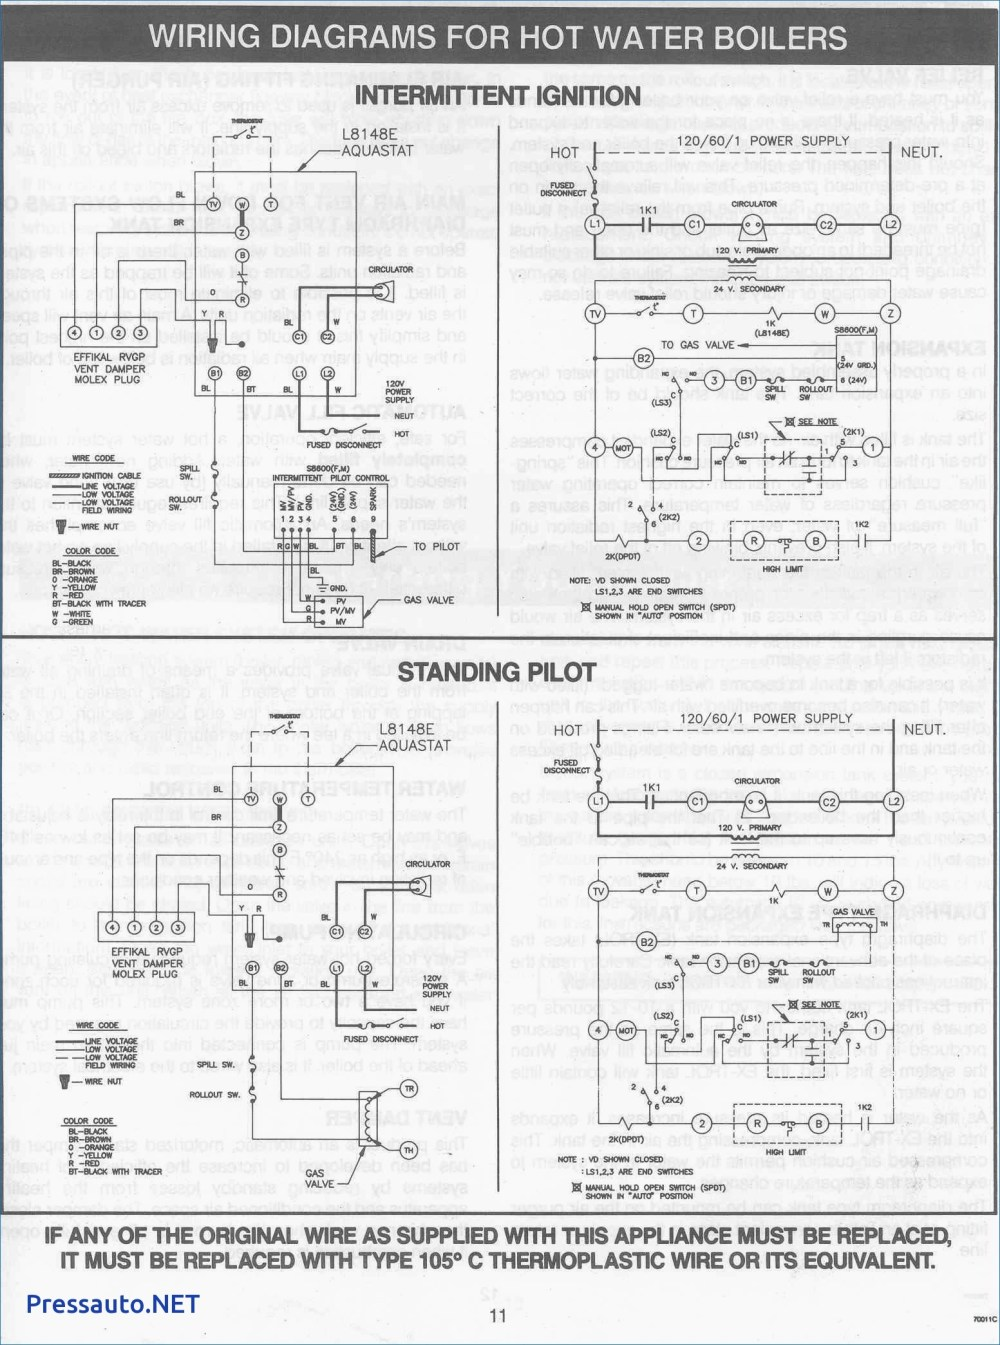 medium resolution of honeywell rm7840l1018 wiring diagram collection honeywell t87n1000 wire diagram dolgular 12 c download wiring diagram